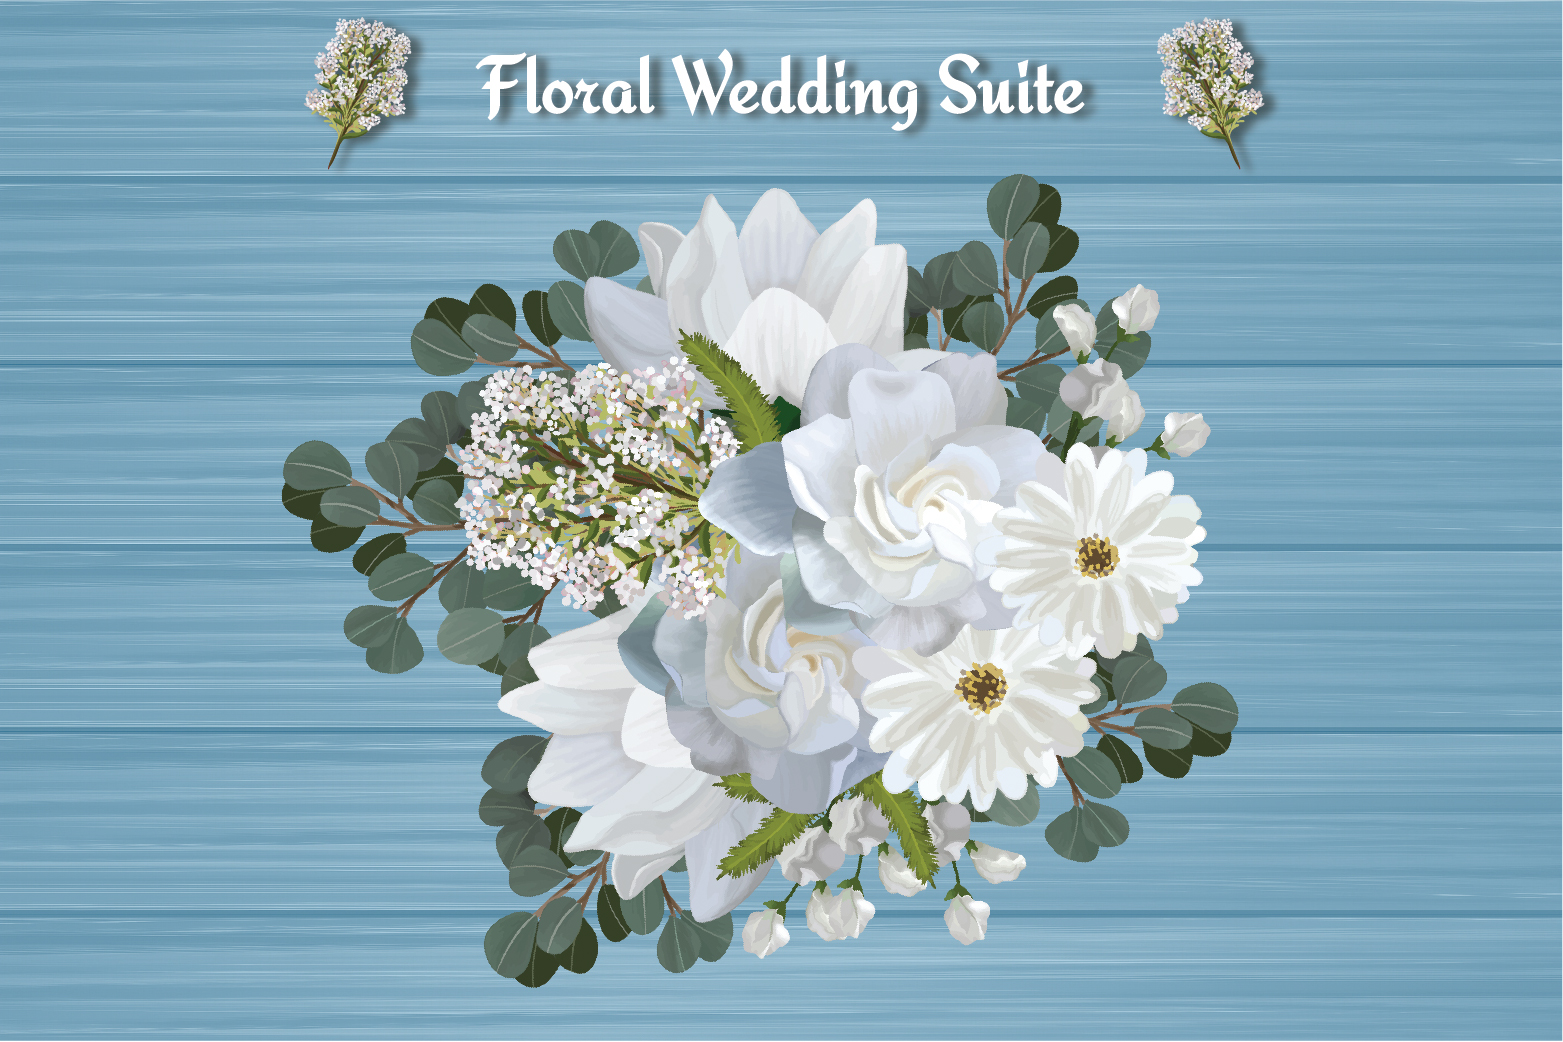 White Floral Wedding Invitation Suite example image 6